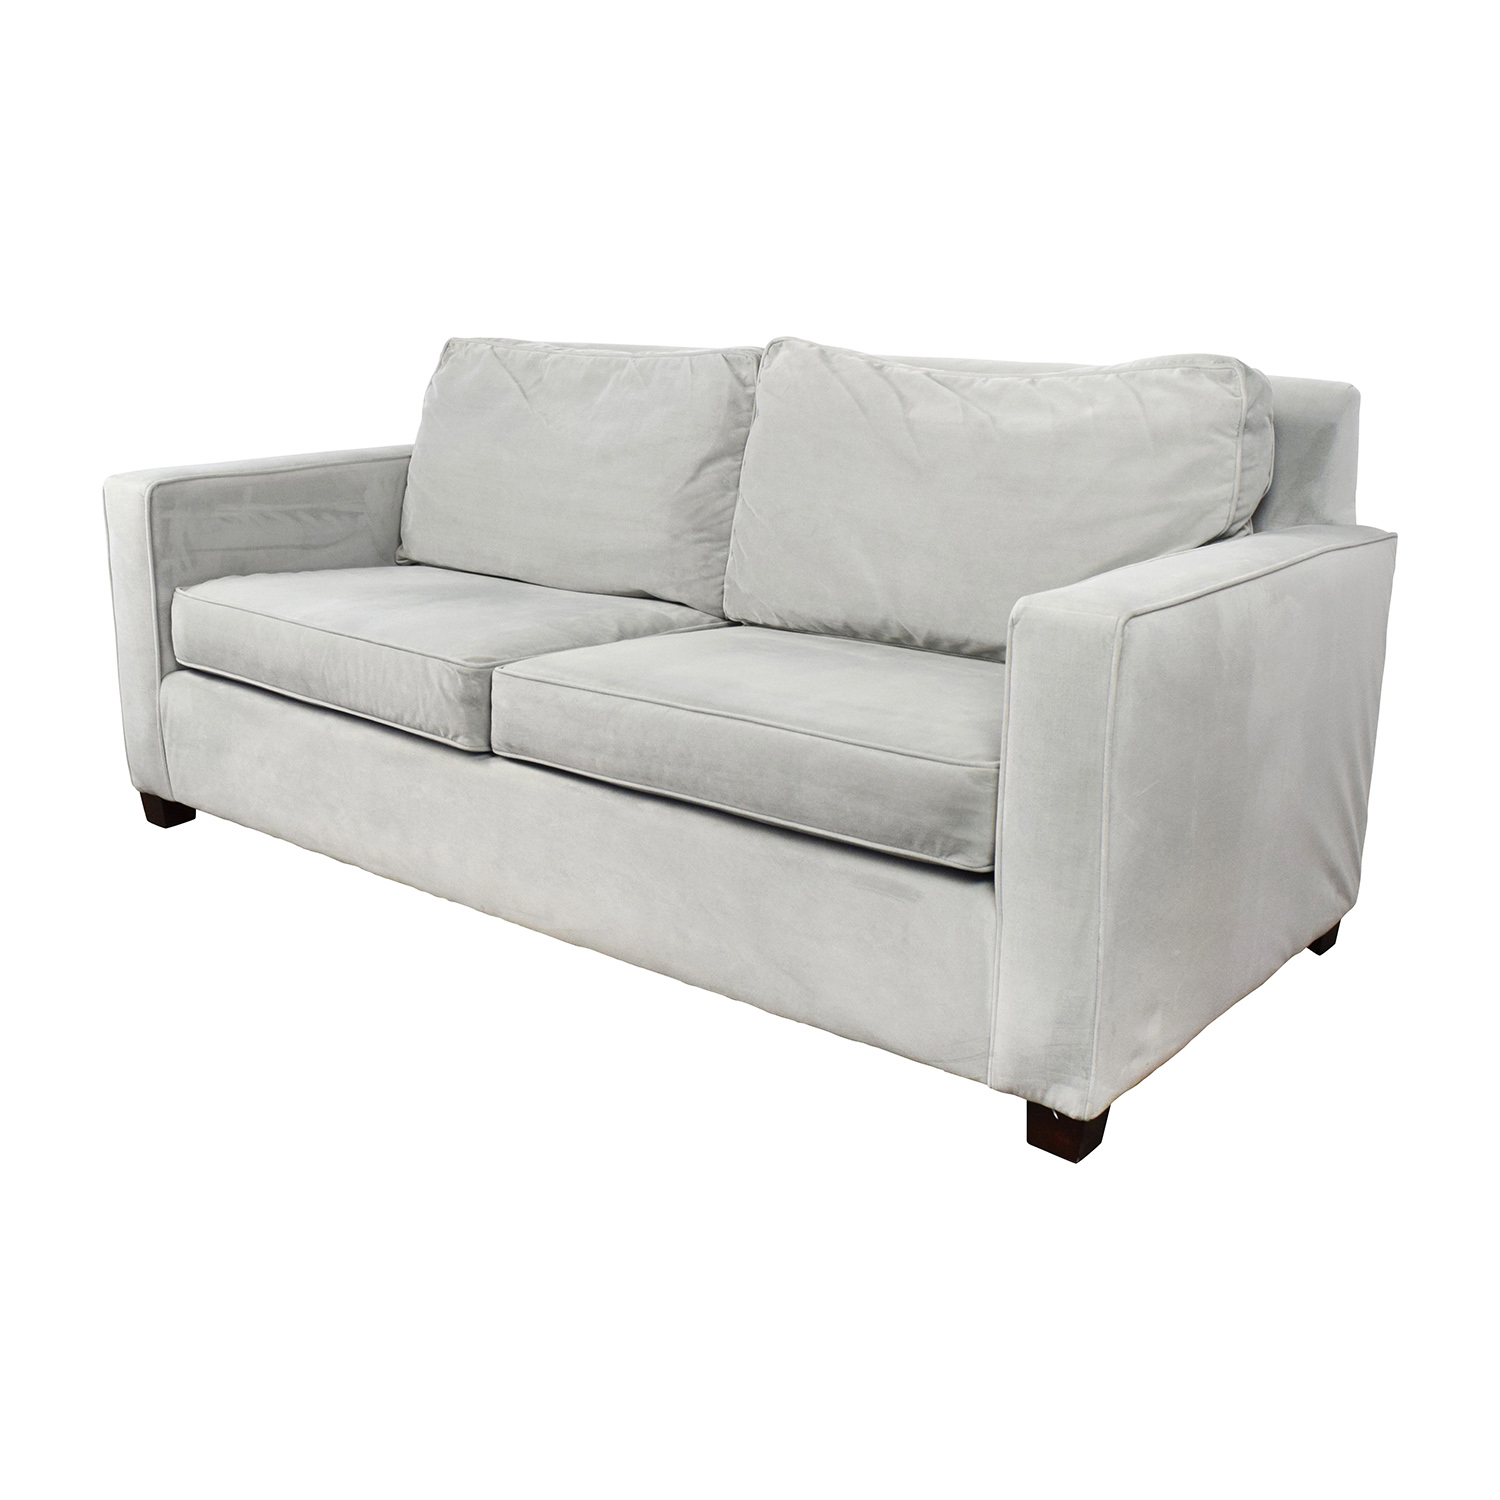 43% OFF West Elm West Elm Henry Grey Sofa Sofas